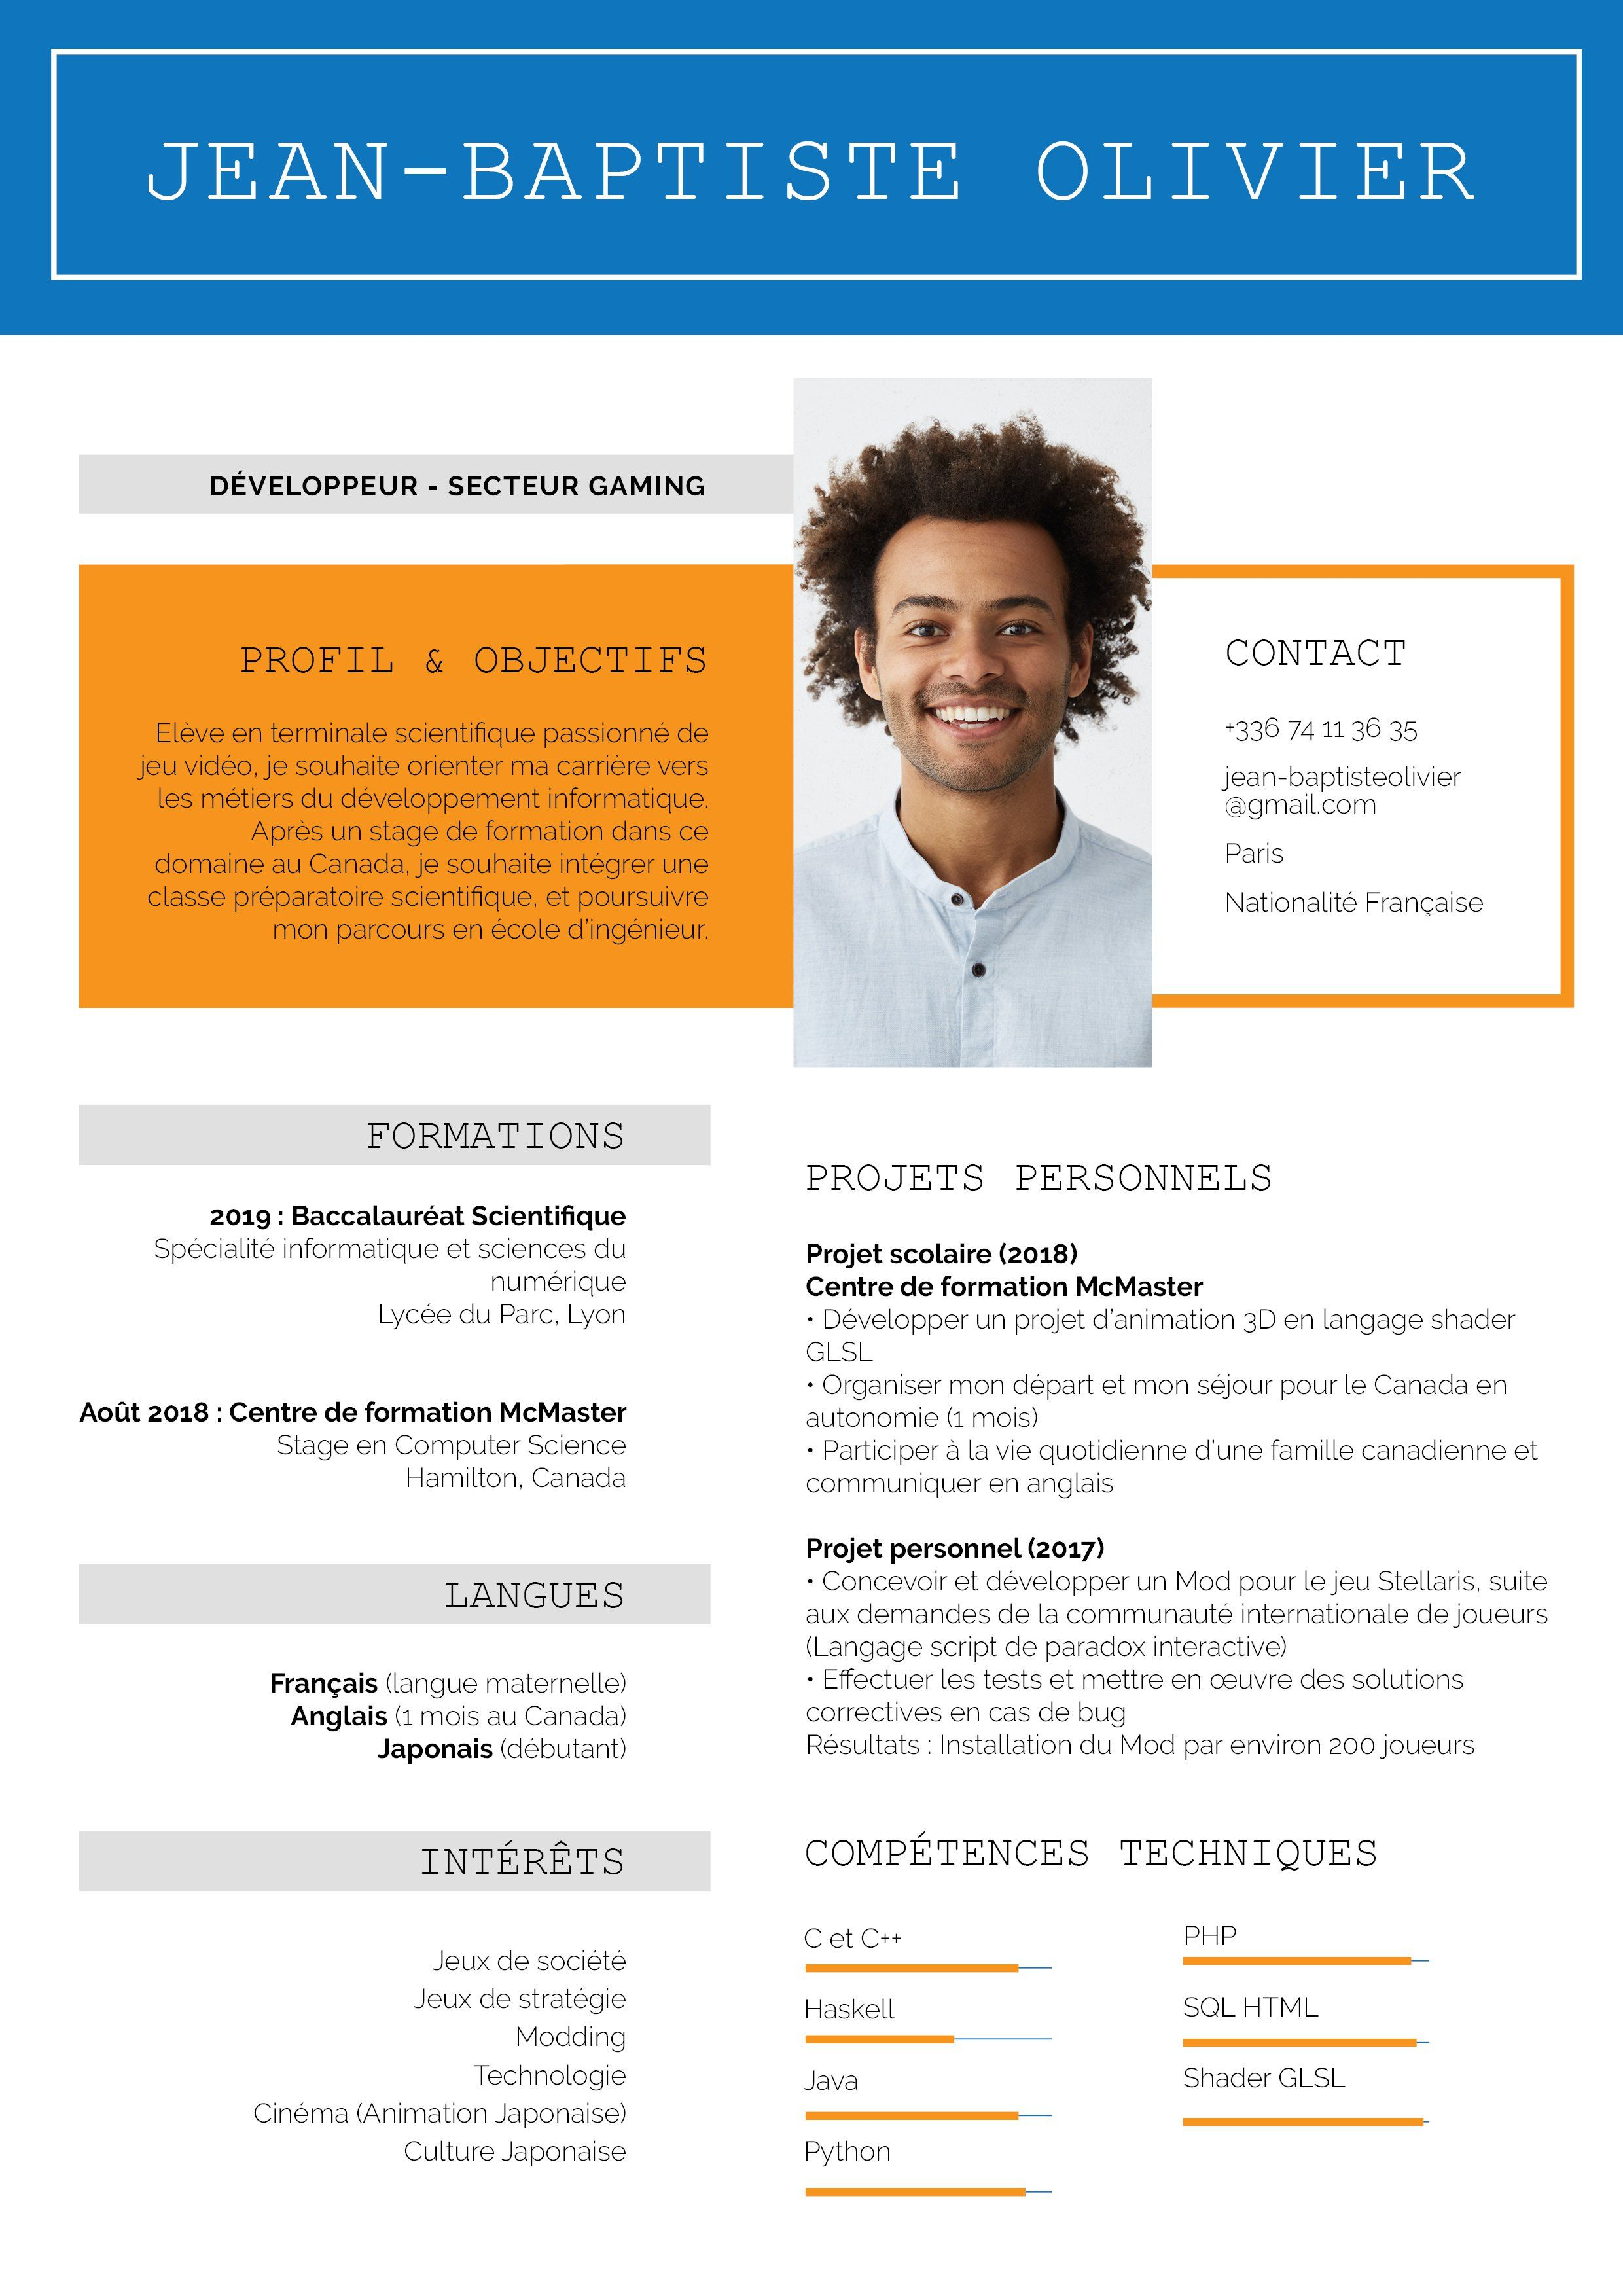 Epingle Par My Cv Factory Sur Cv Parcoursup Cv Etudiant Modele Cv Redaction De Cv